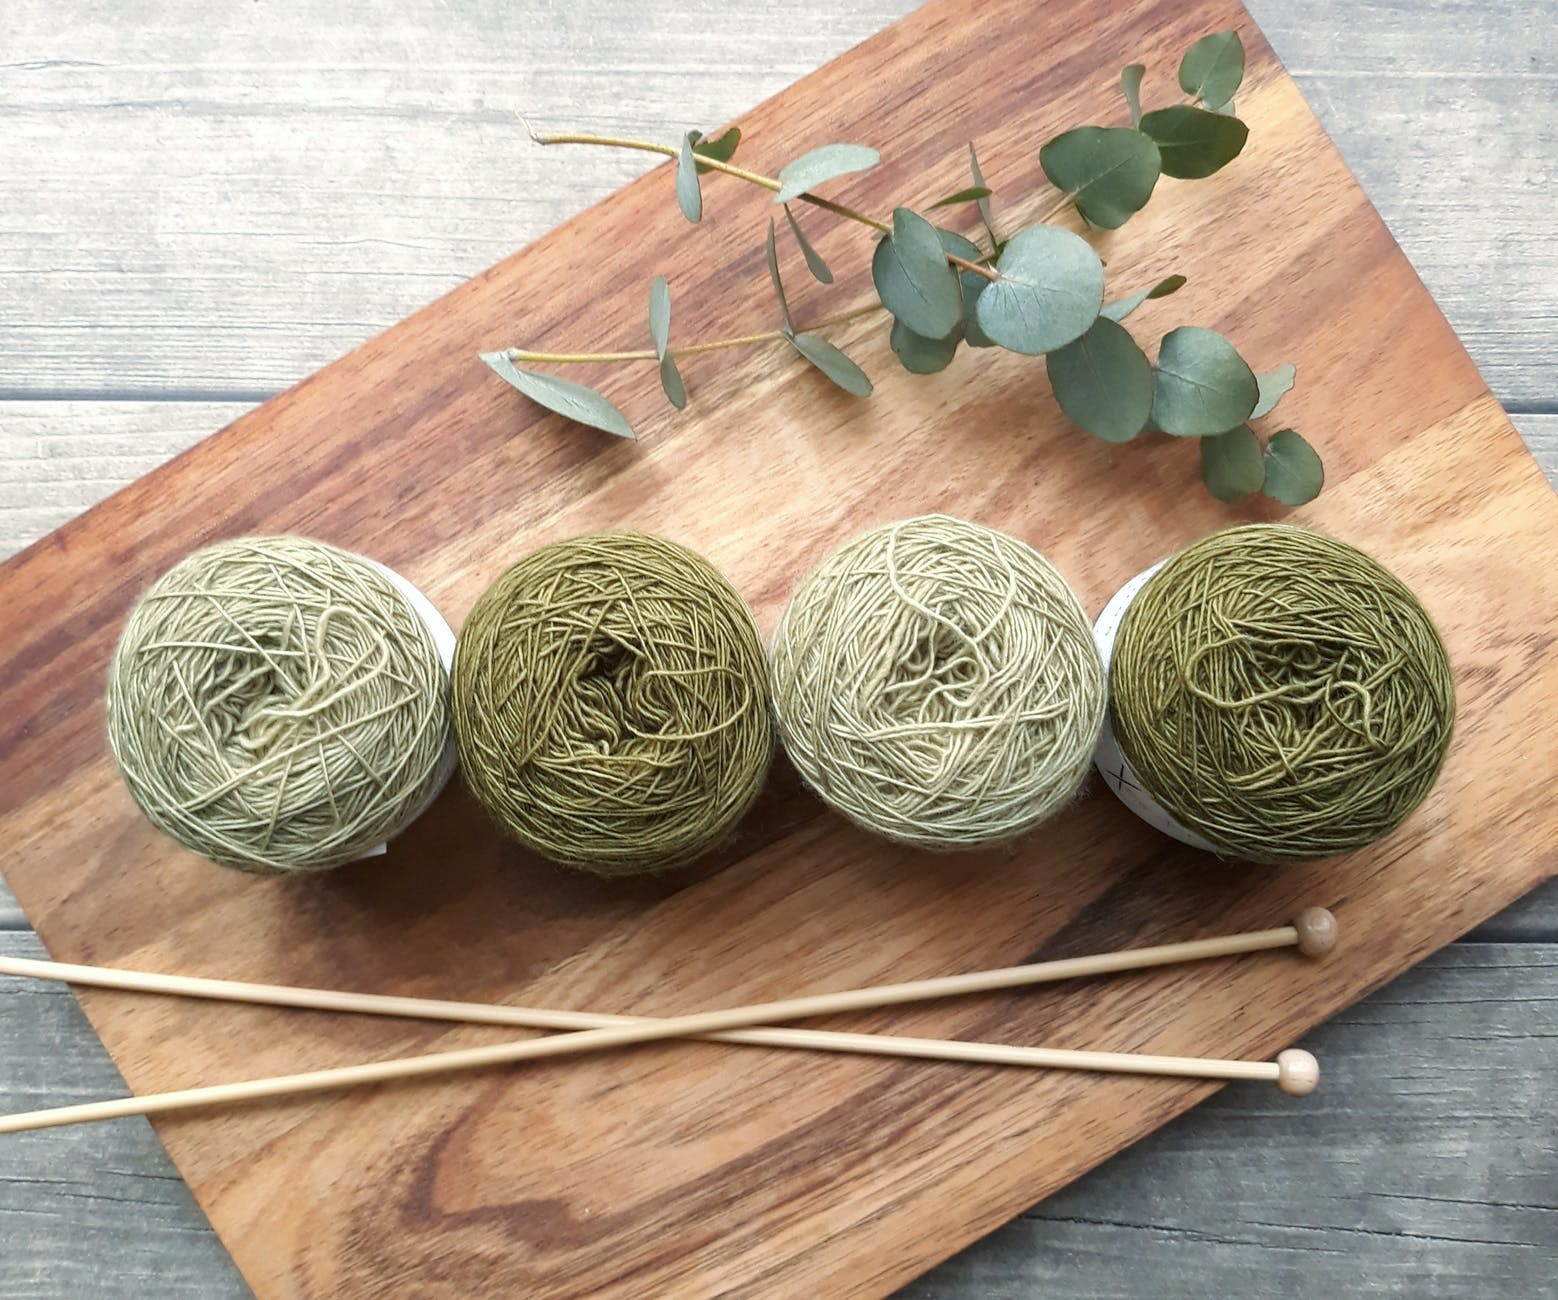 four green yarns on chopping board